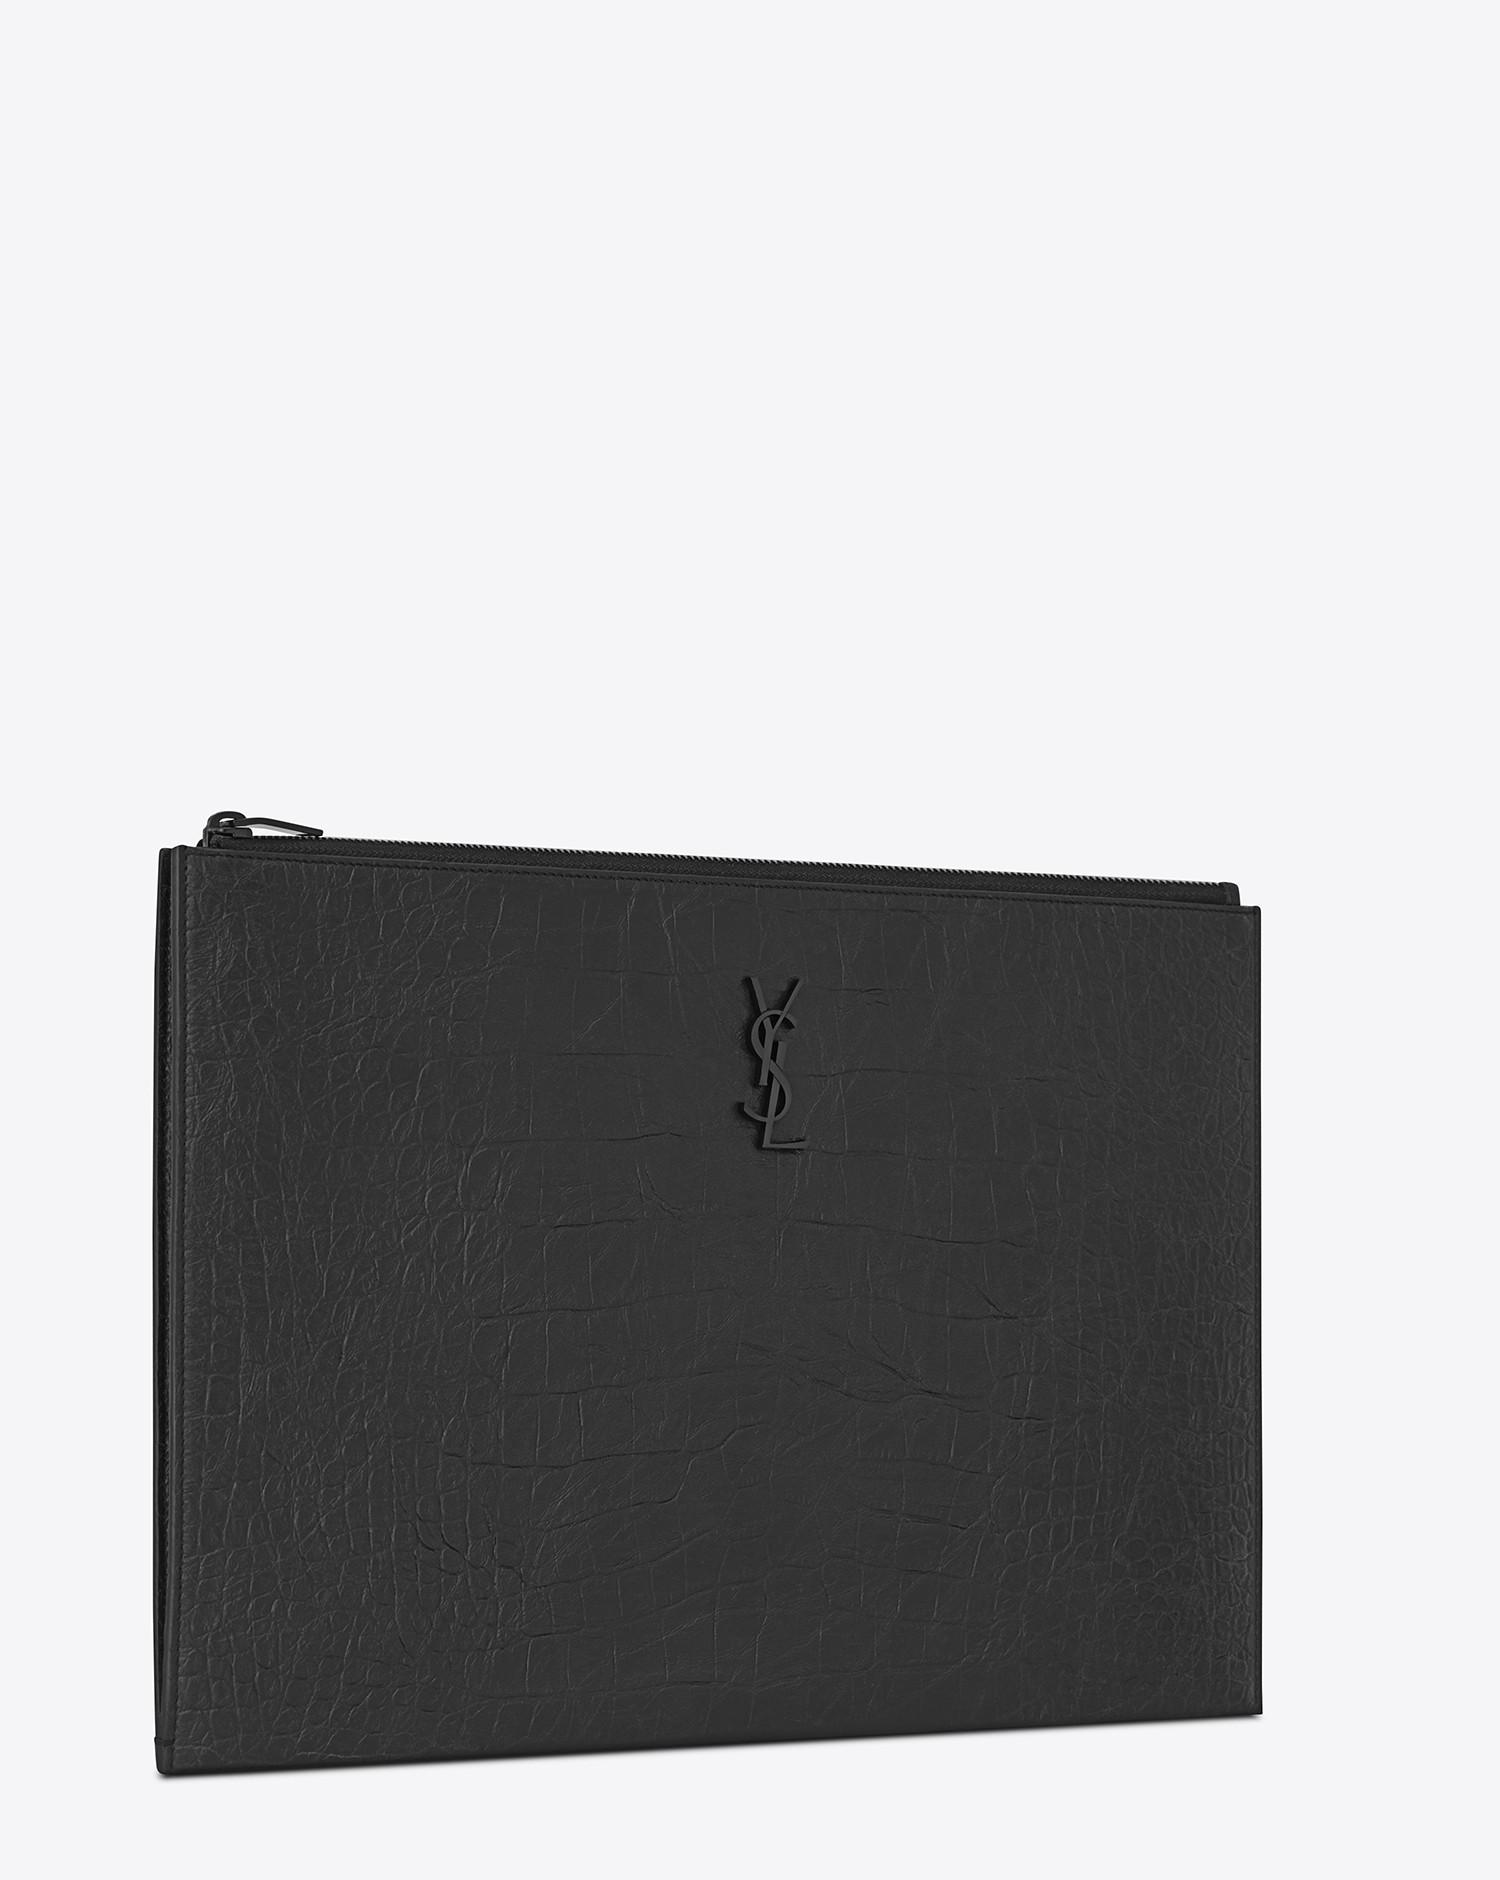 d059c8c15e3 Lyst - Saint Laurent Monogram Document Holder In Crocodile Embossed Leather  in Black for Men